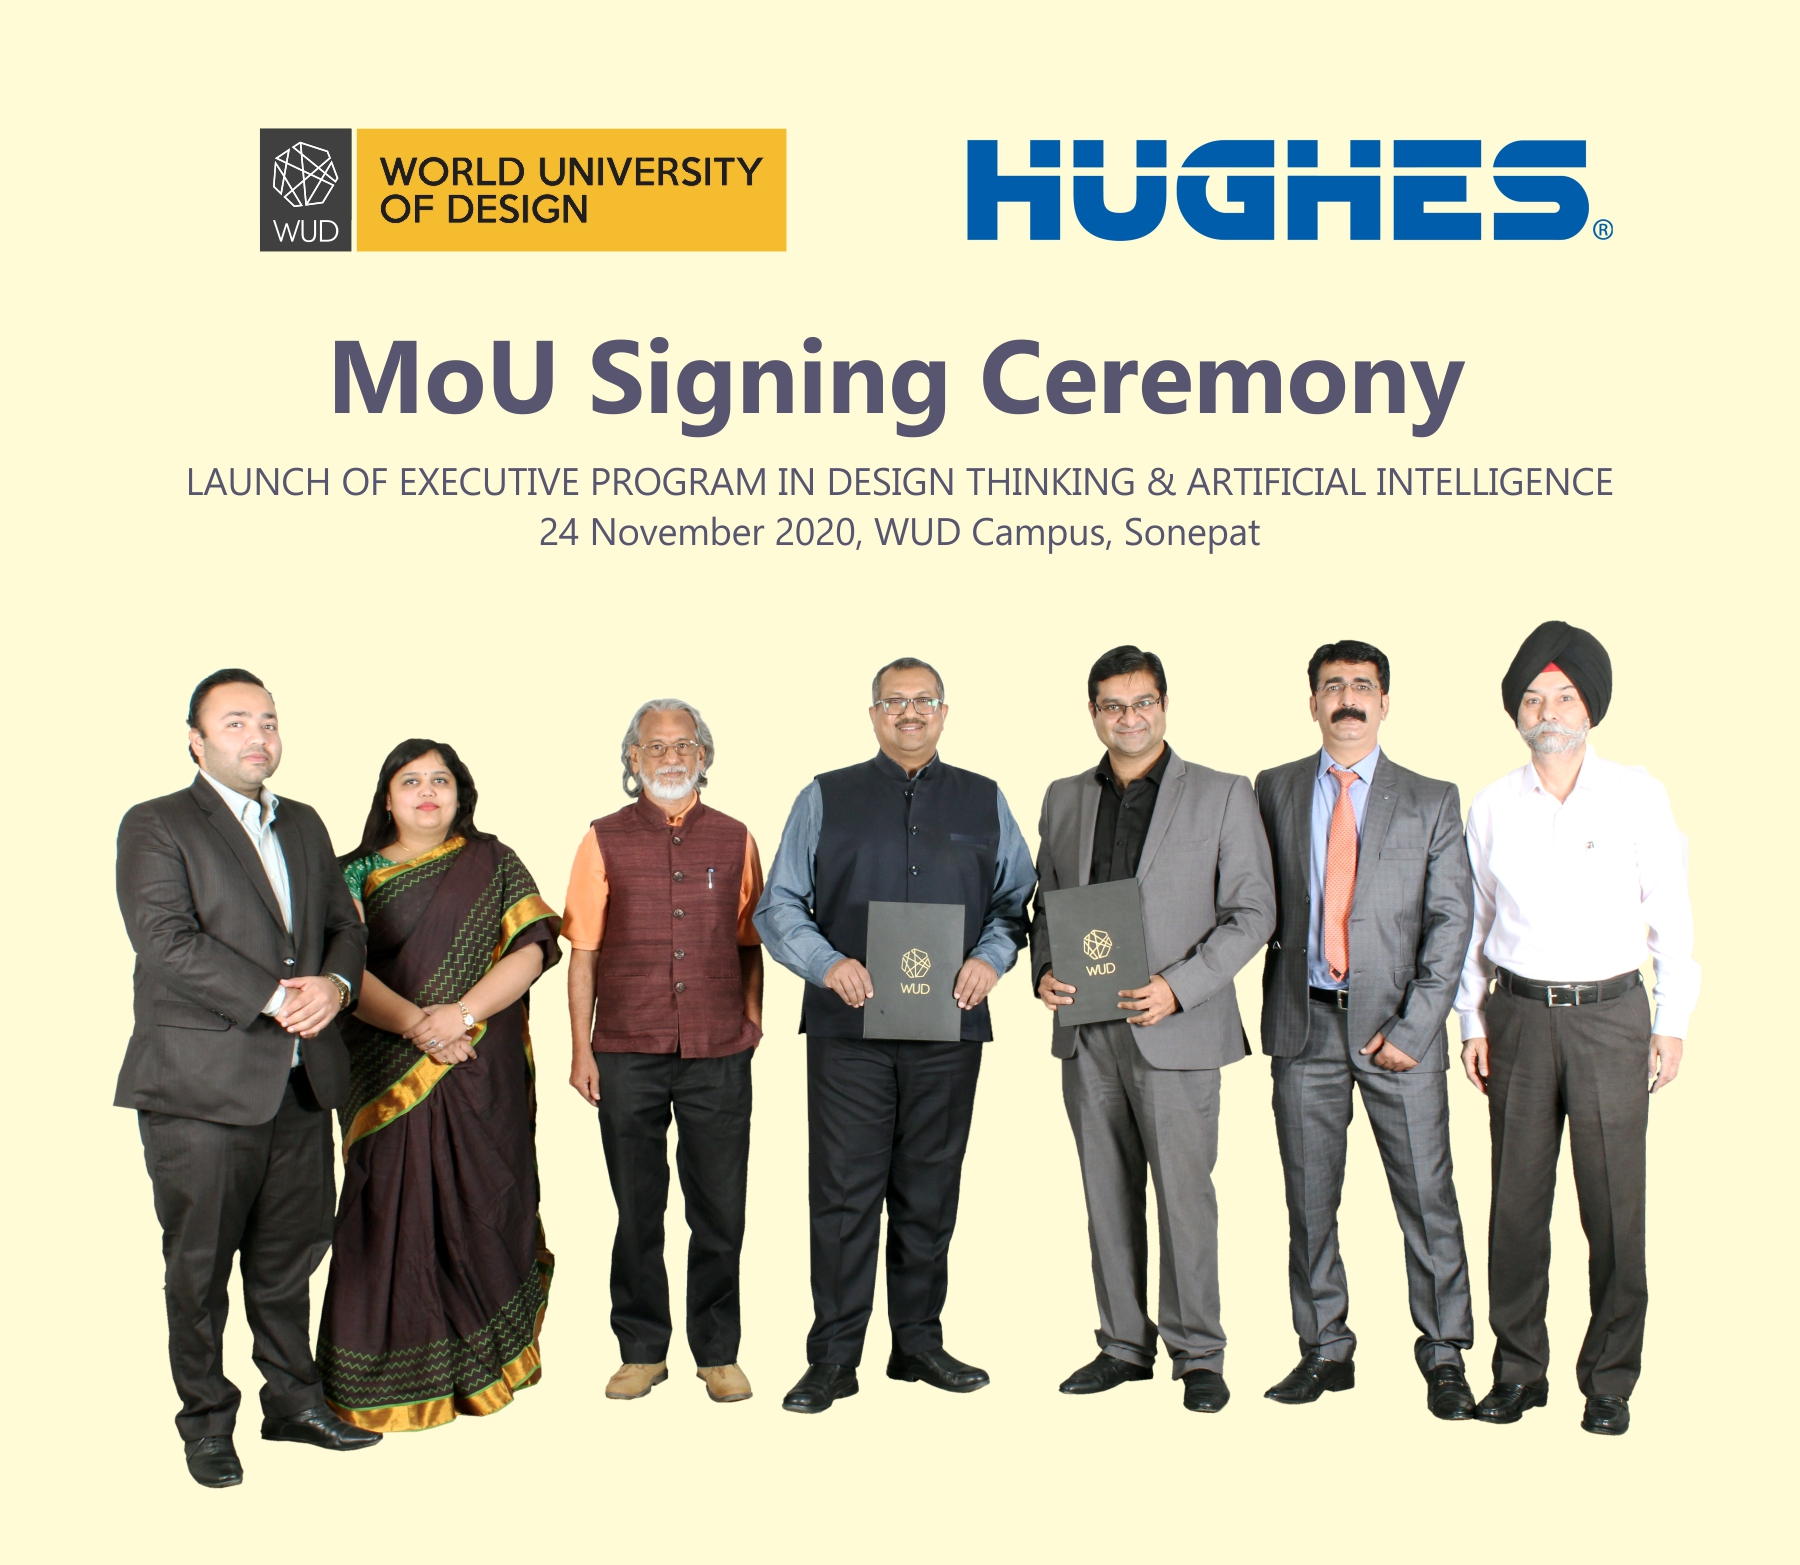 World University of Design and Hughes Global Education signs an Agreement of Cooperation to offer Design + Management Programs